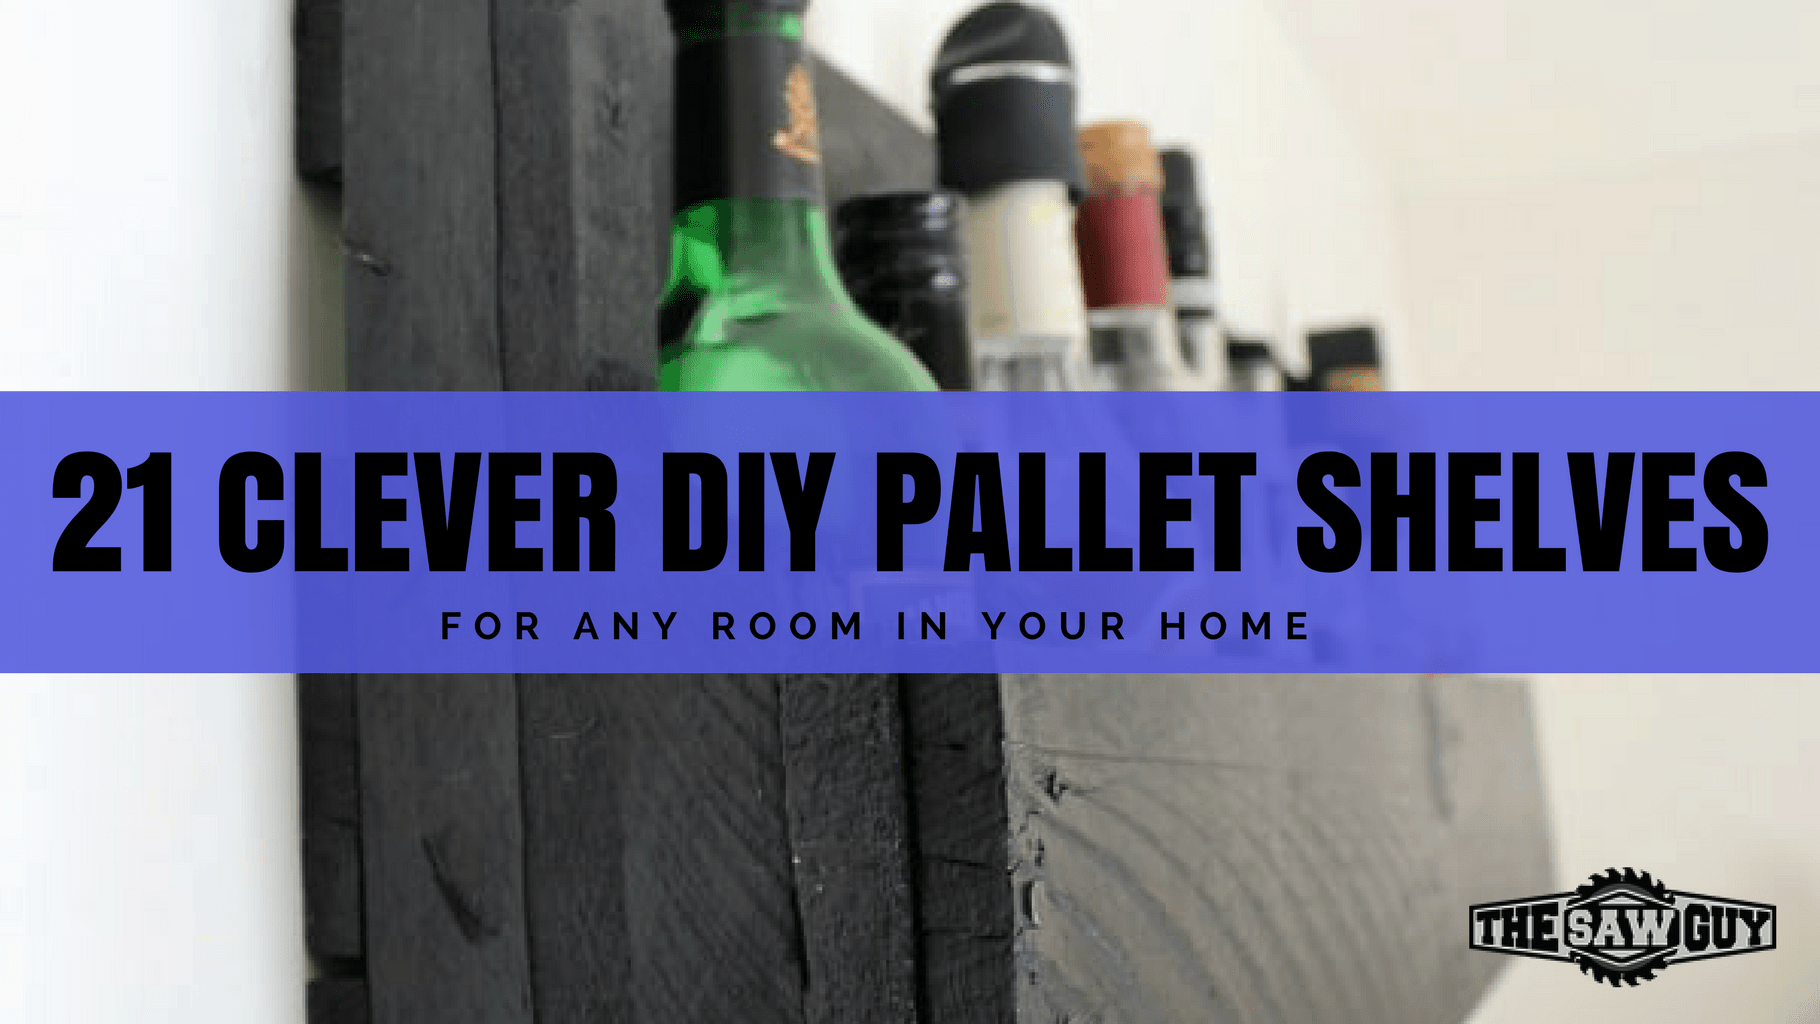 21 Brilliantly Clever Diy Pallet Shelves To Make For Any